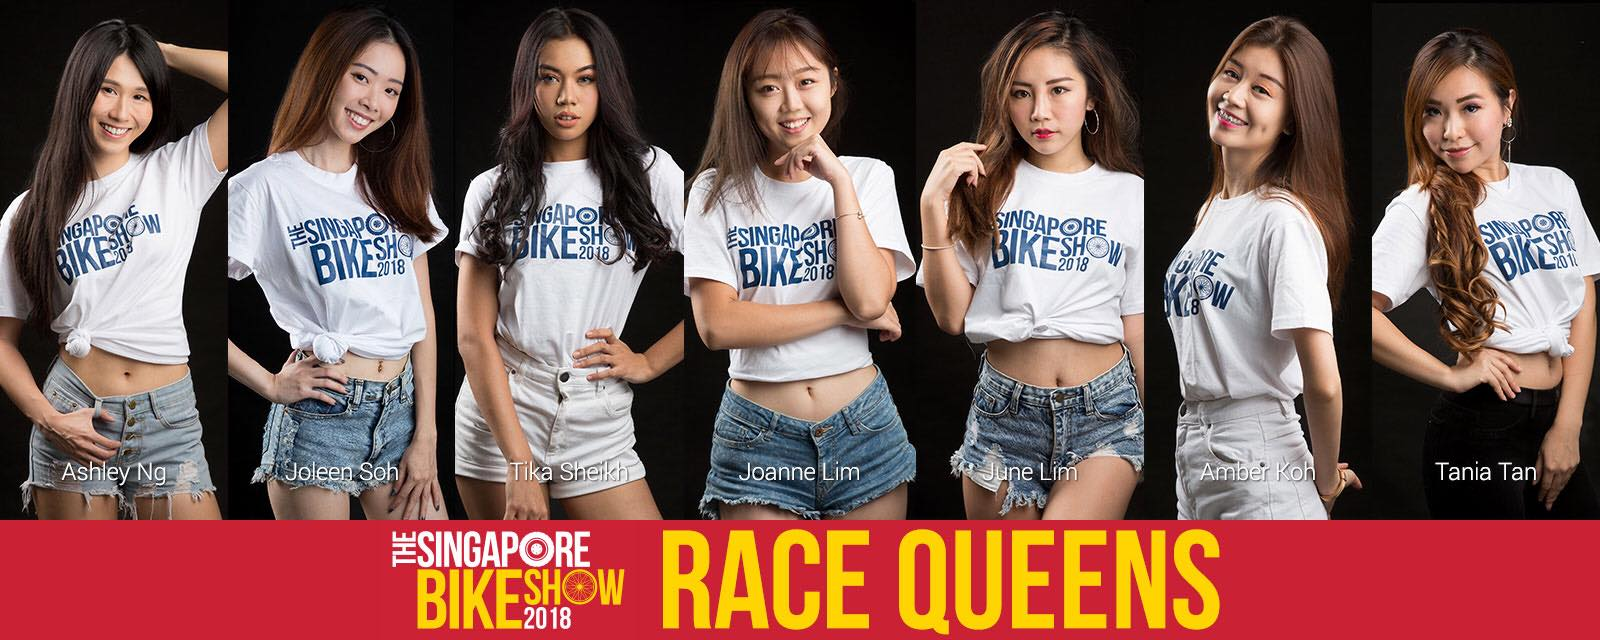 Singapore_Bike_Show_2018_Race_Queens